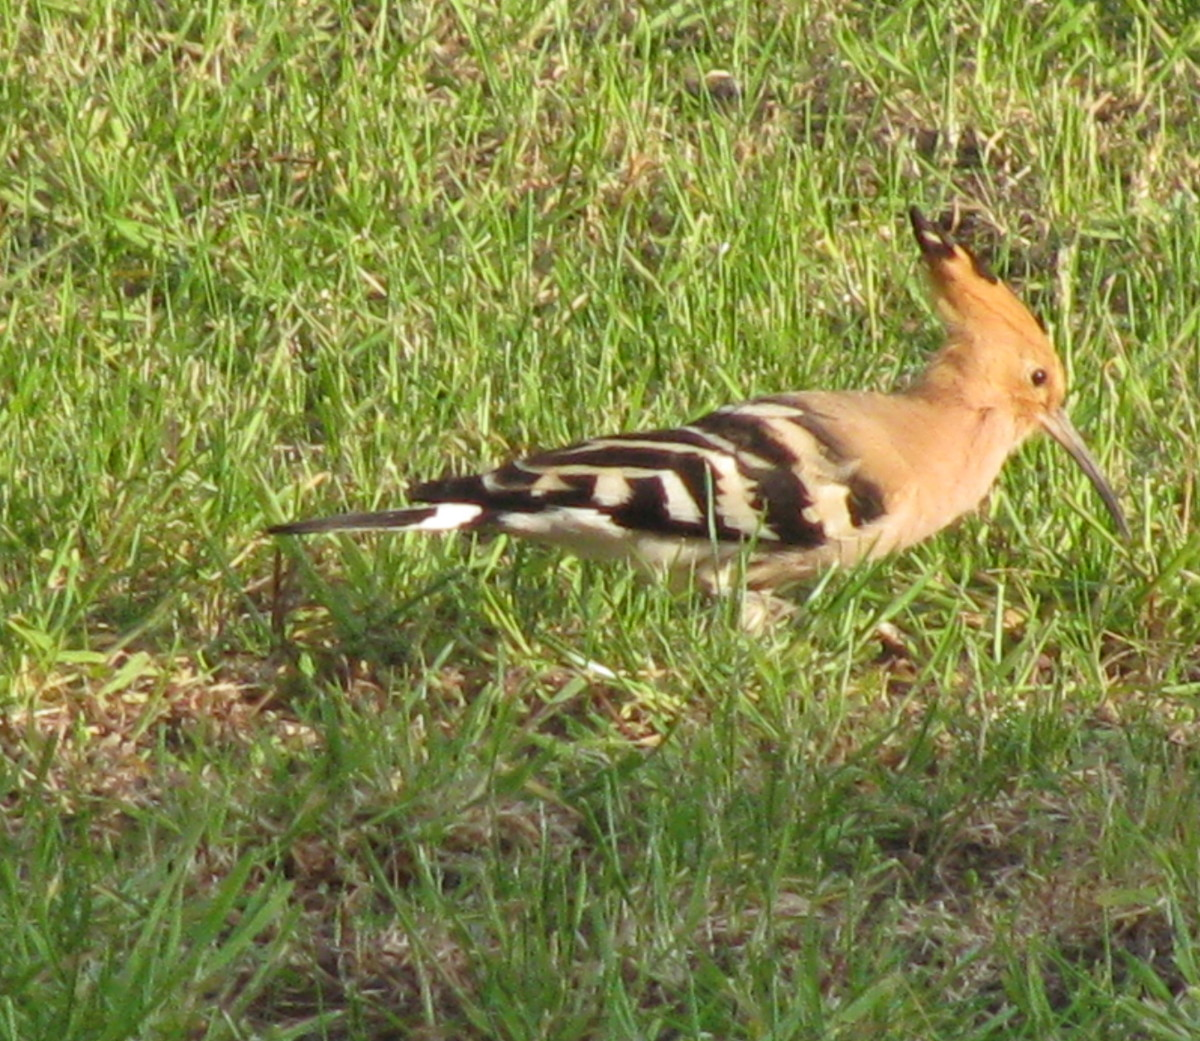 a-hoopoe-in-a-french-garden-upupa-epops-description-range-habits-diet-other-interesting-facts